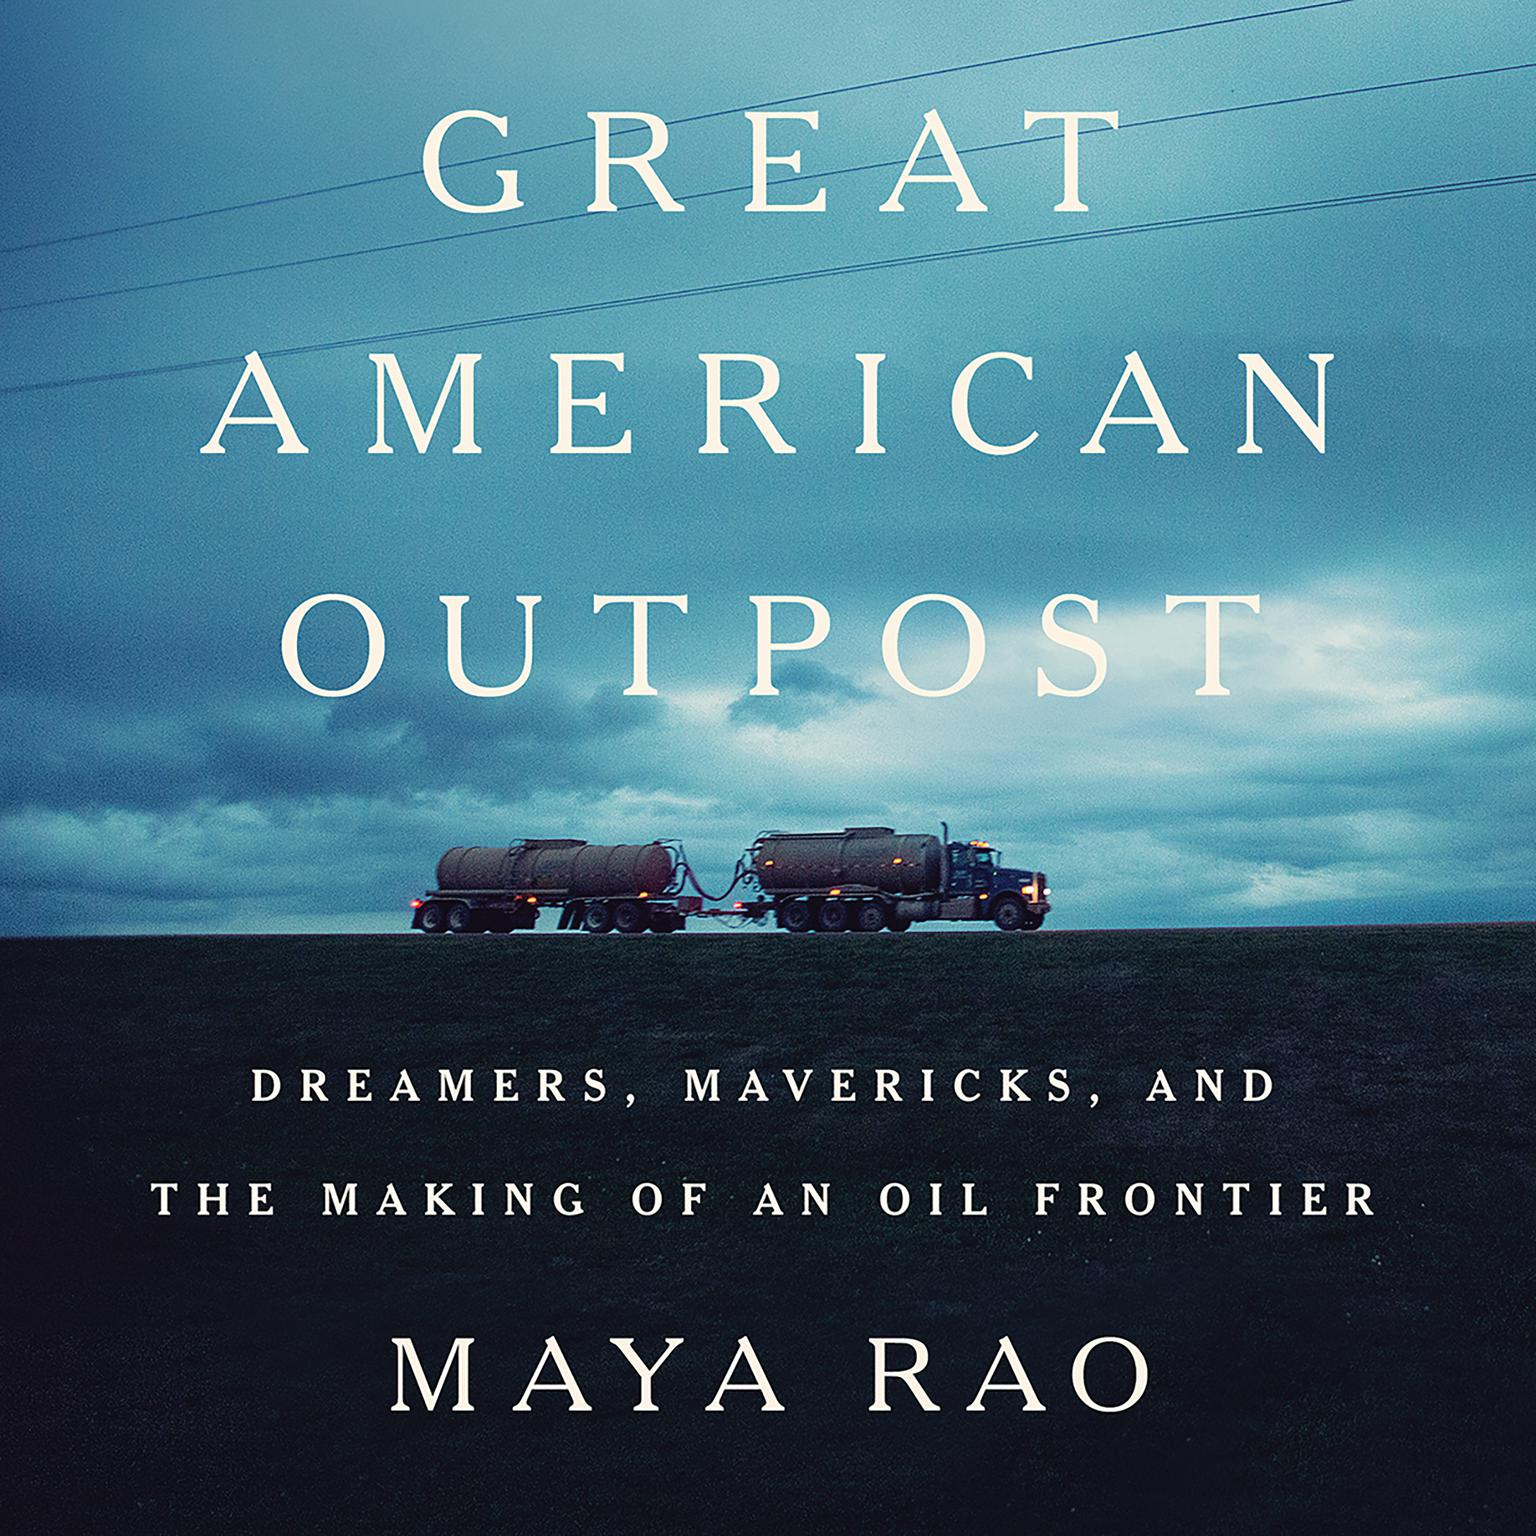 Great American Outpost: Dreamers, Mavericks, and the Making of an Oil Frontier Audiobook, by Maya Rao